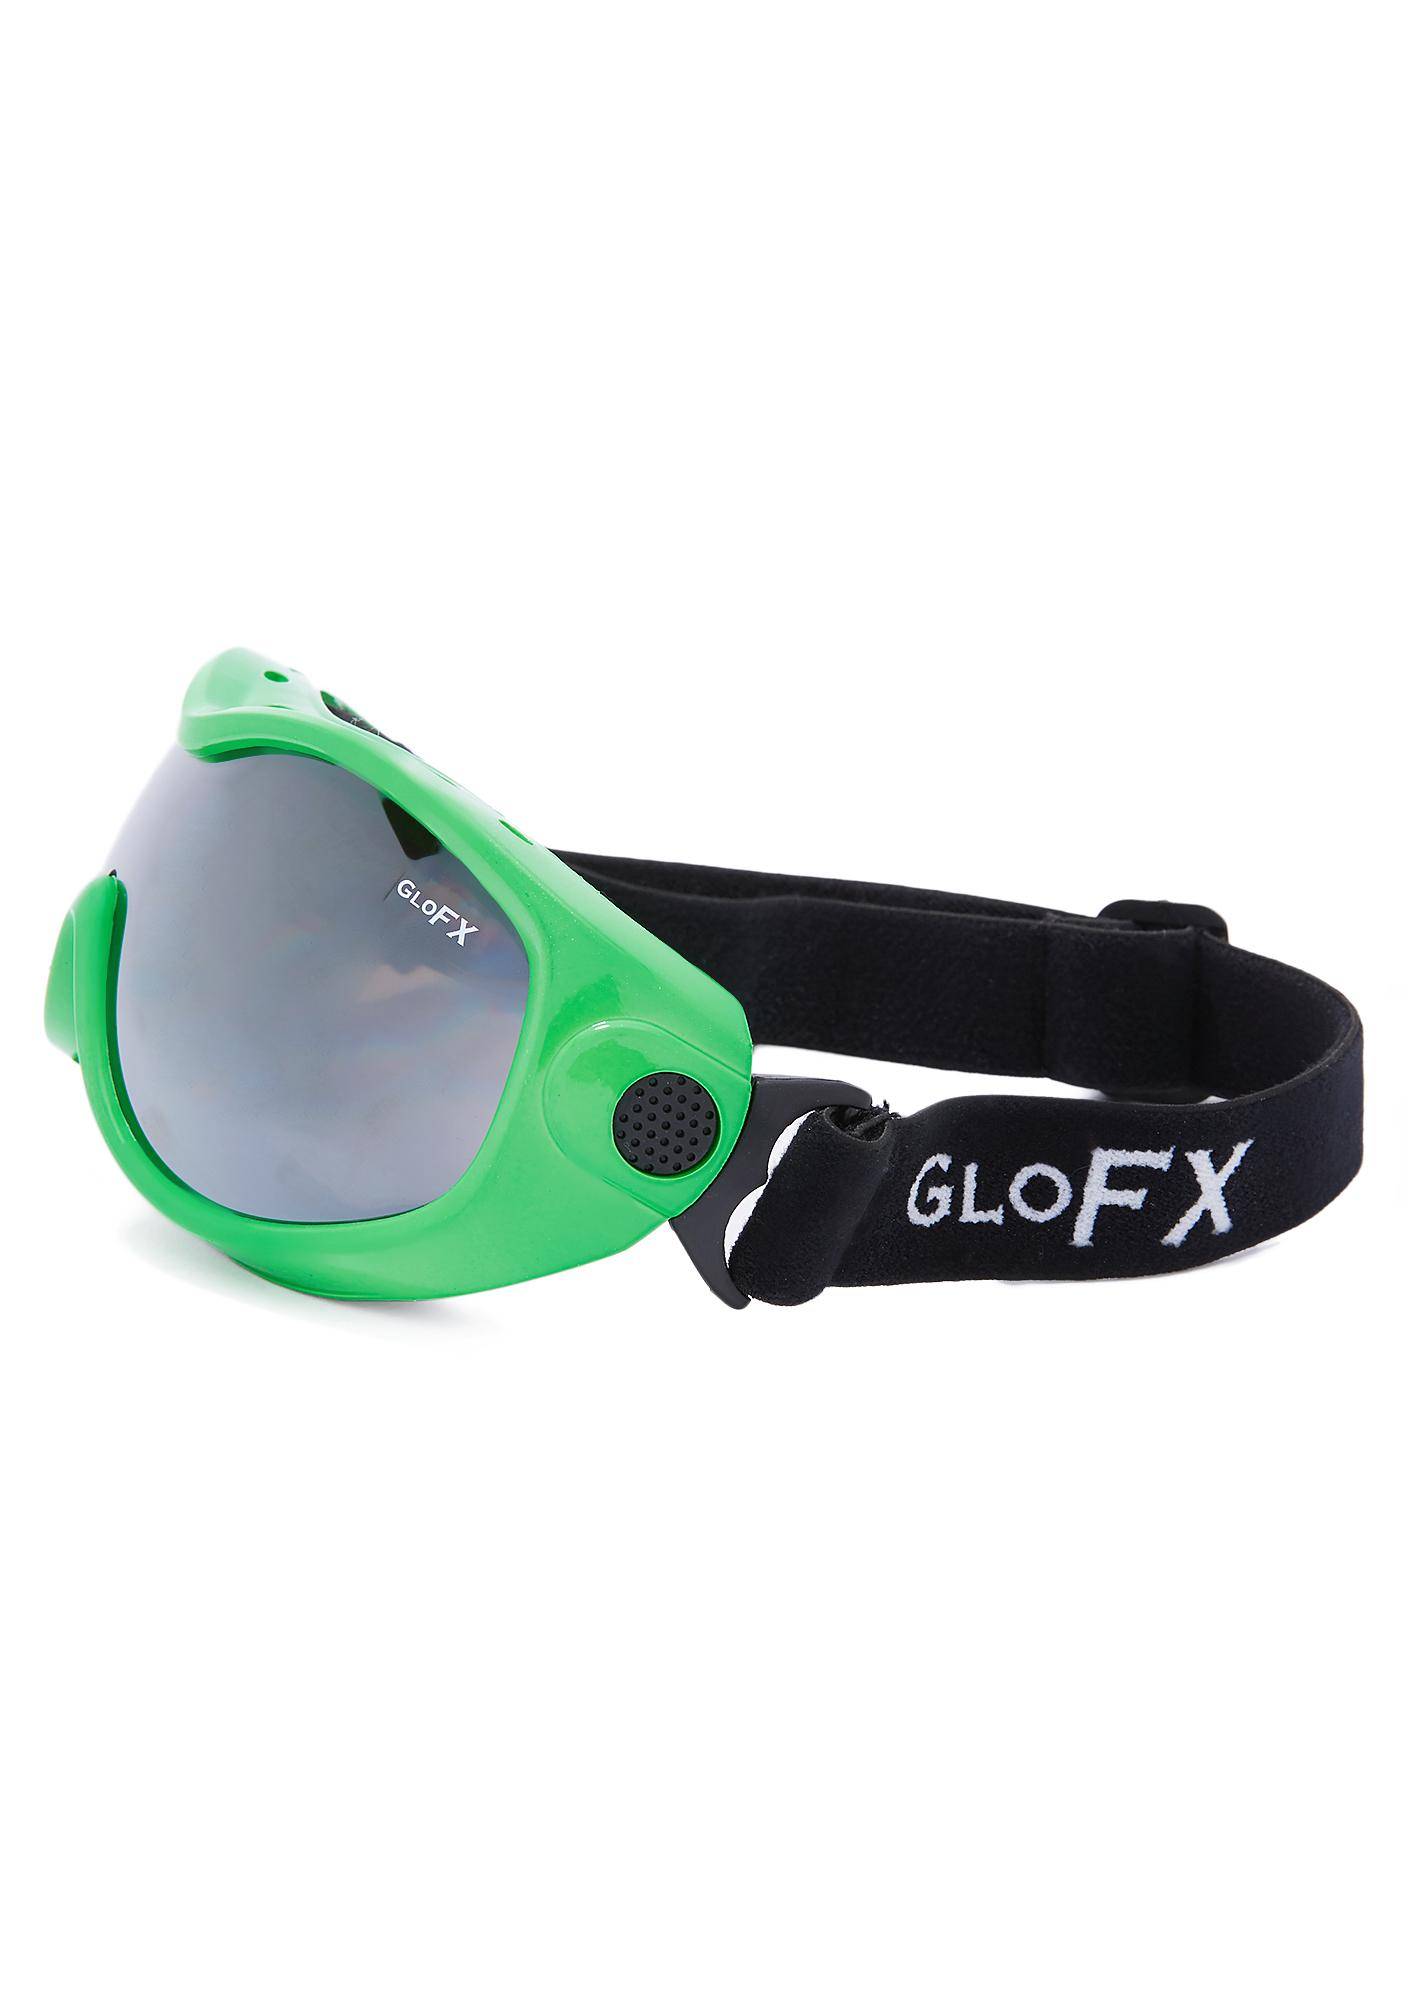 GloFx Diffraction Ski Goggles